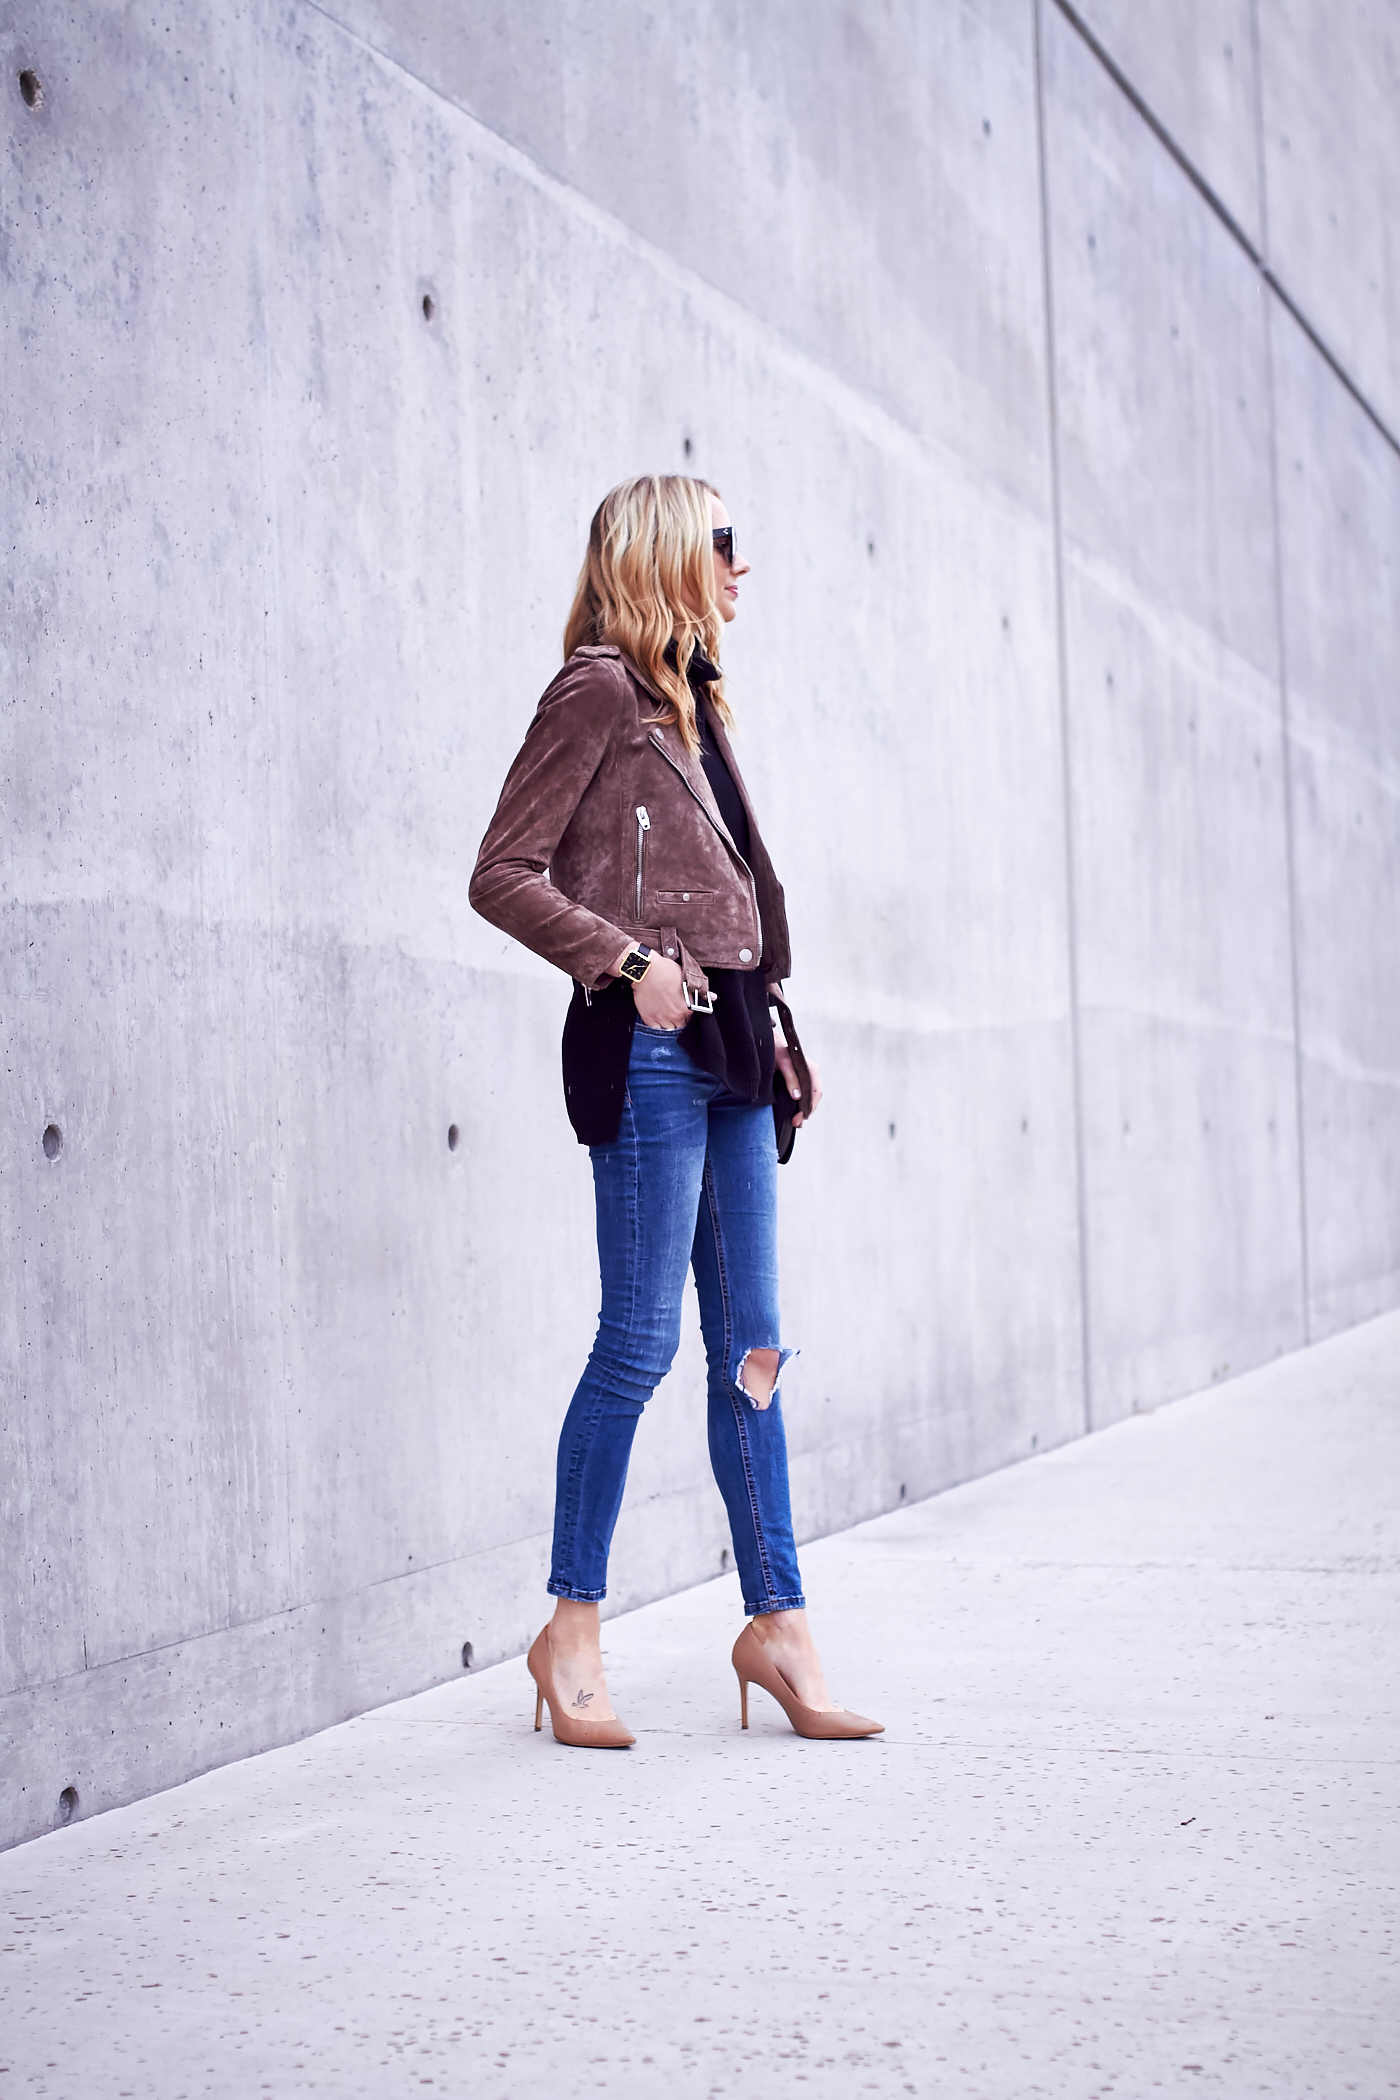 fashion-jackson-blanknyc-morning-suede-moto-jacket-ripped-denim-jeans-nude-pumps